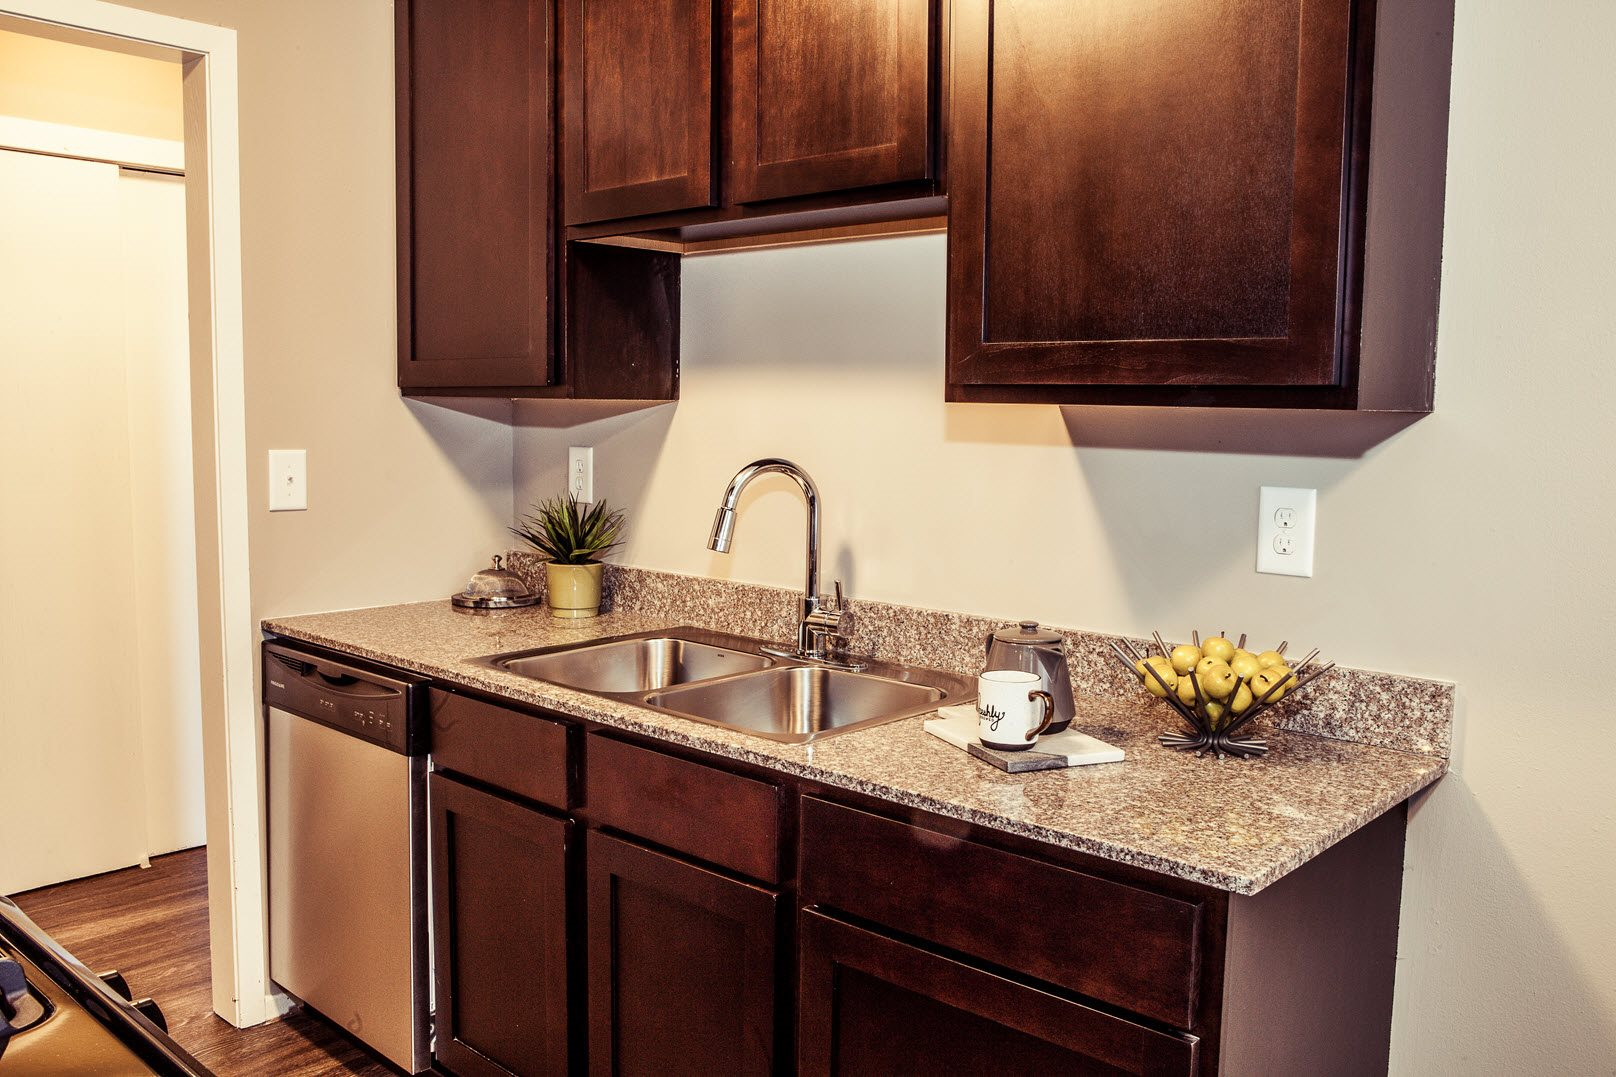 Model kitchen at Concierge Apartments in Richfield MN